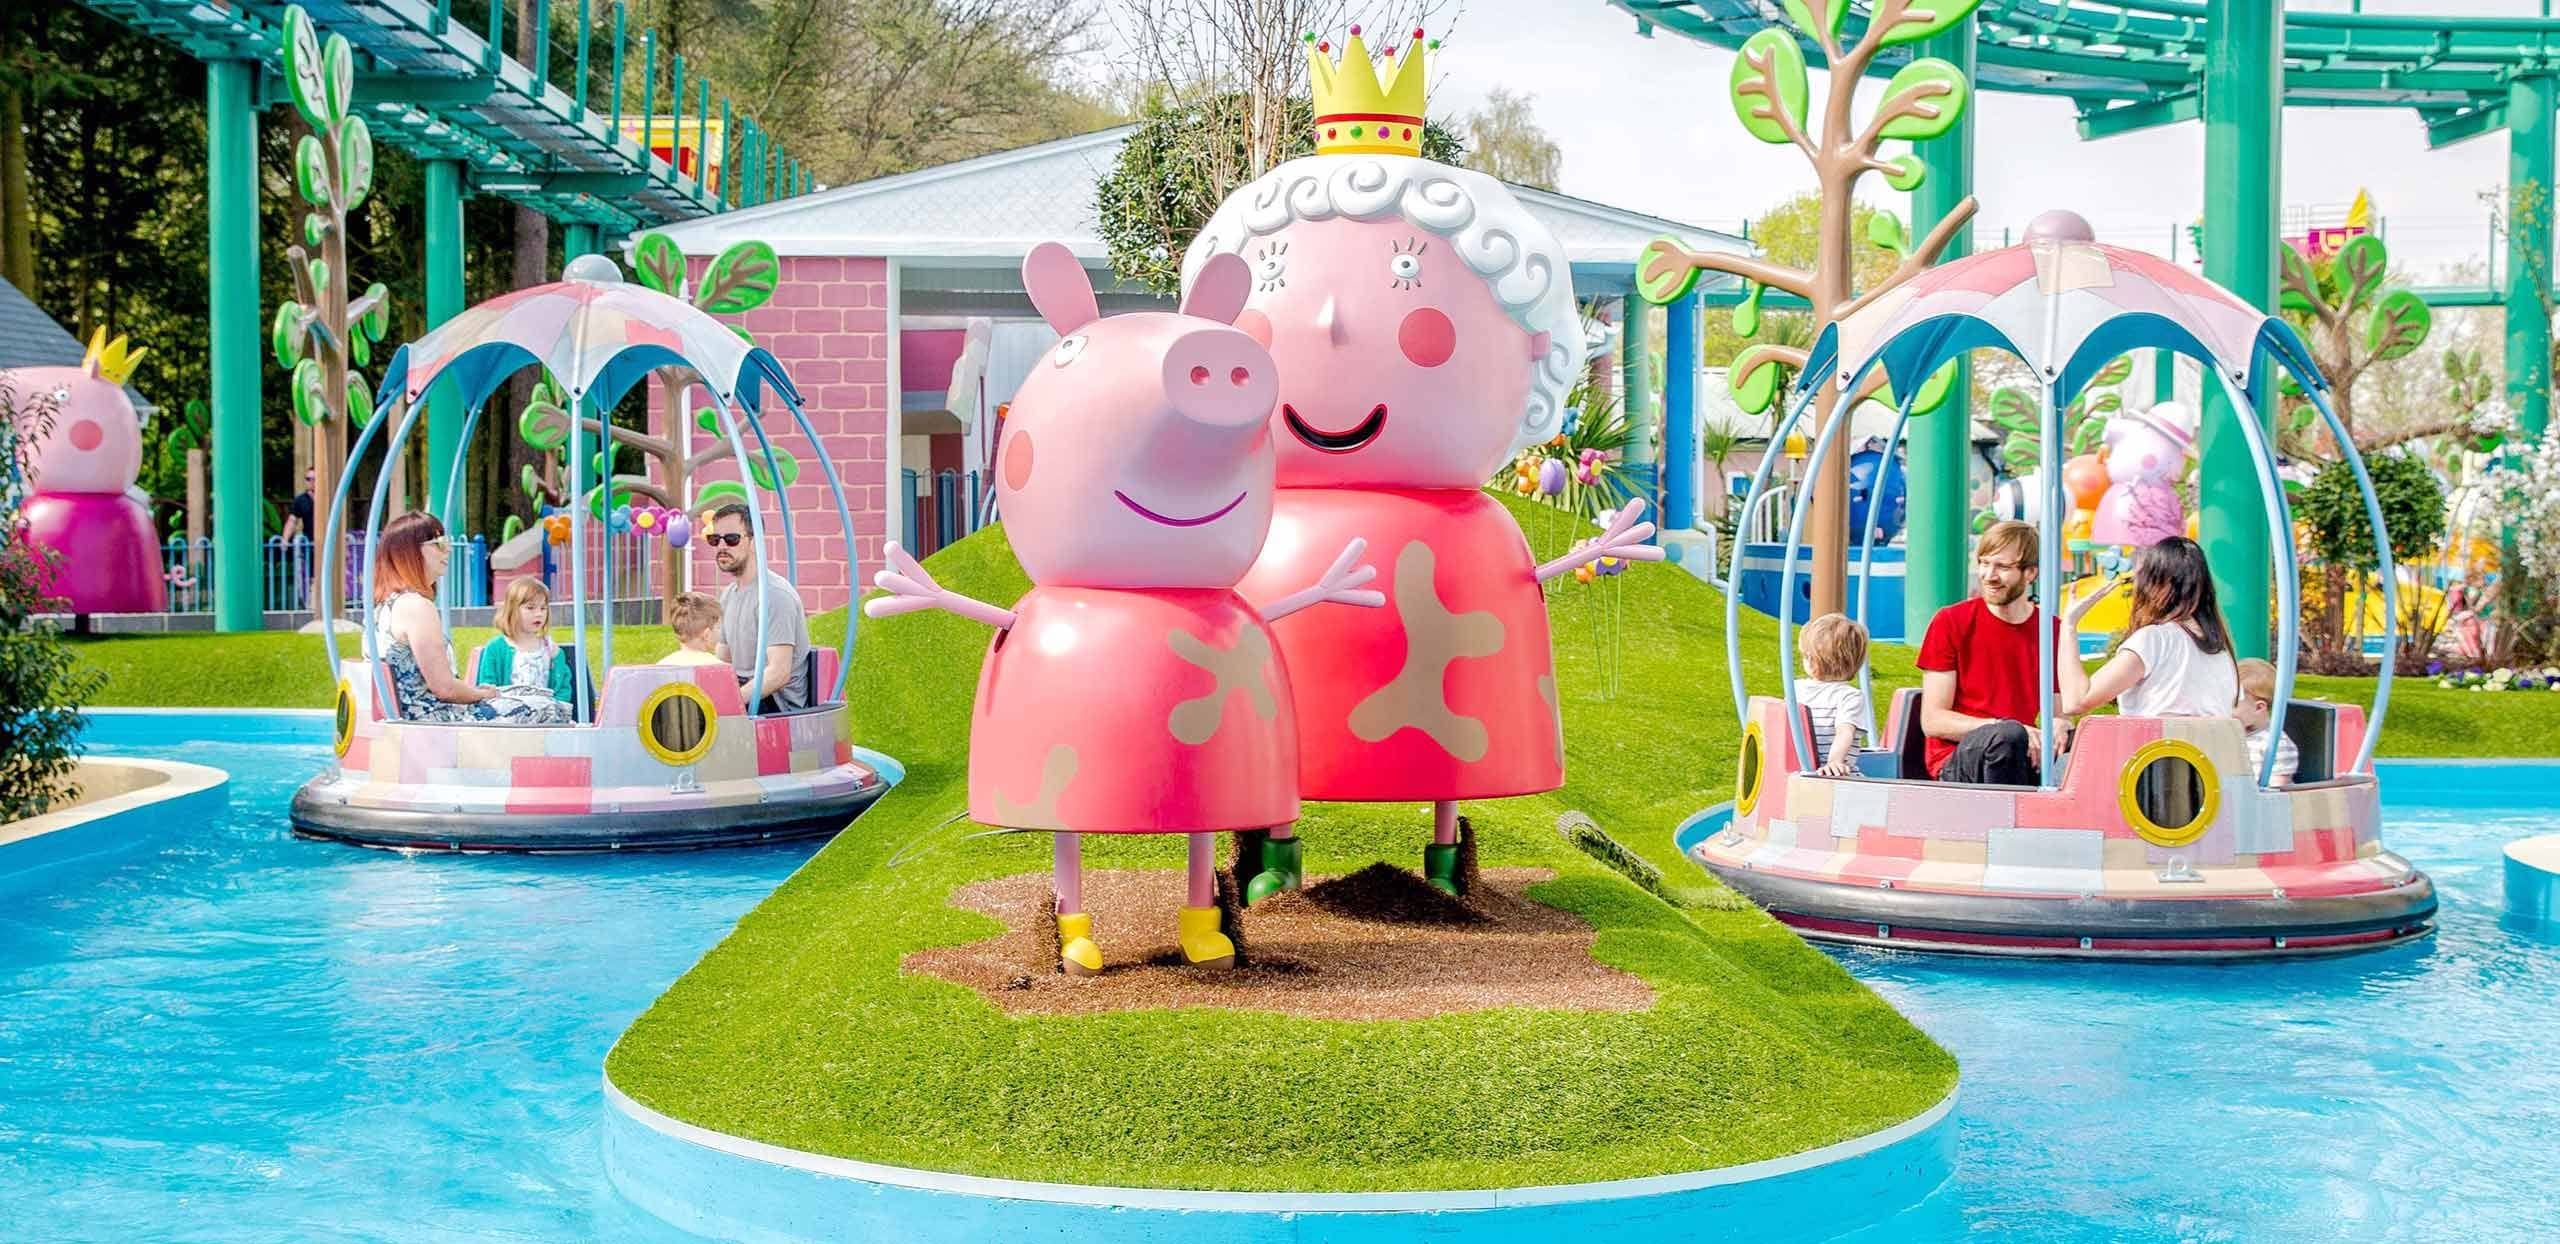 Open at an even bigger Peppa Pig World from 16th May 2018!